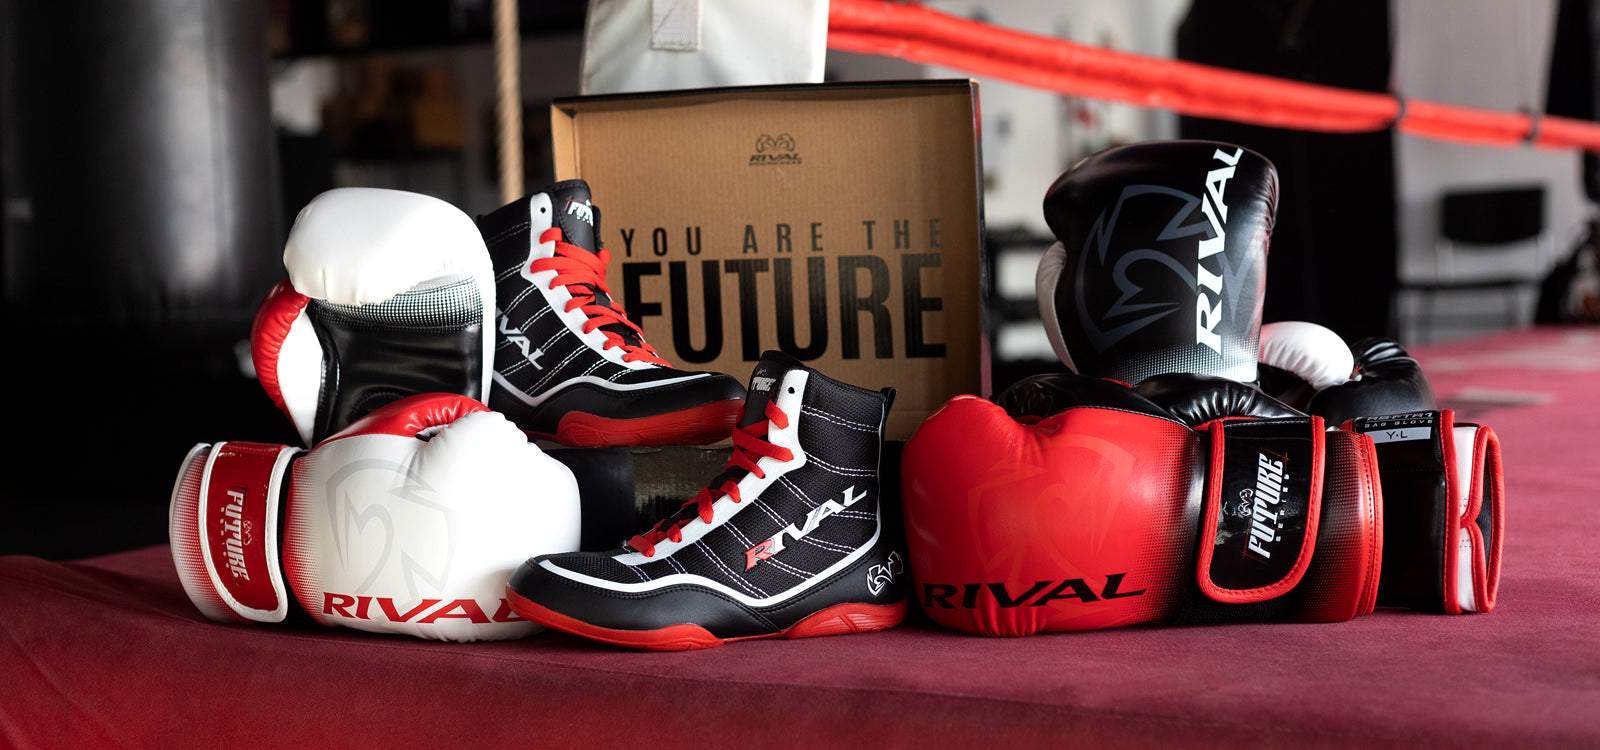 Rival RFX-Guerrero Pro Fight Gloves